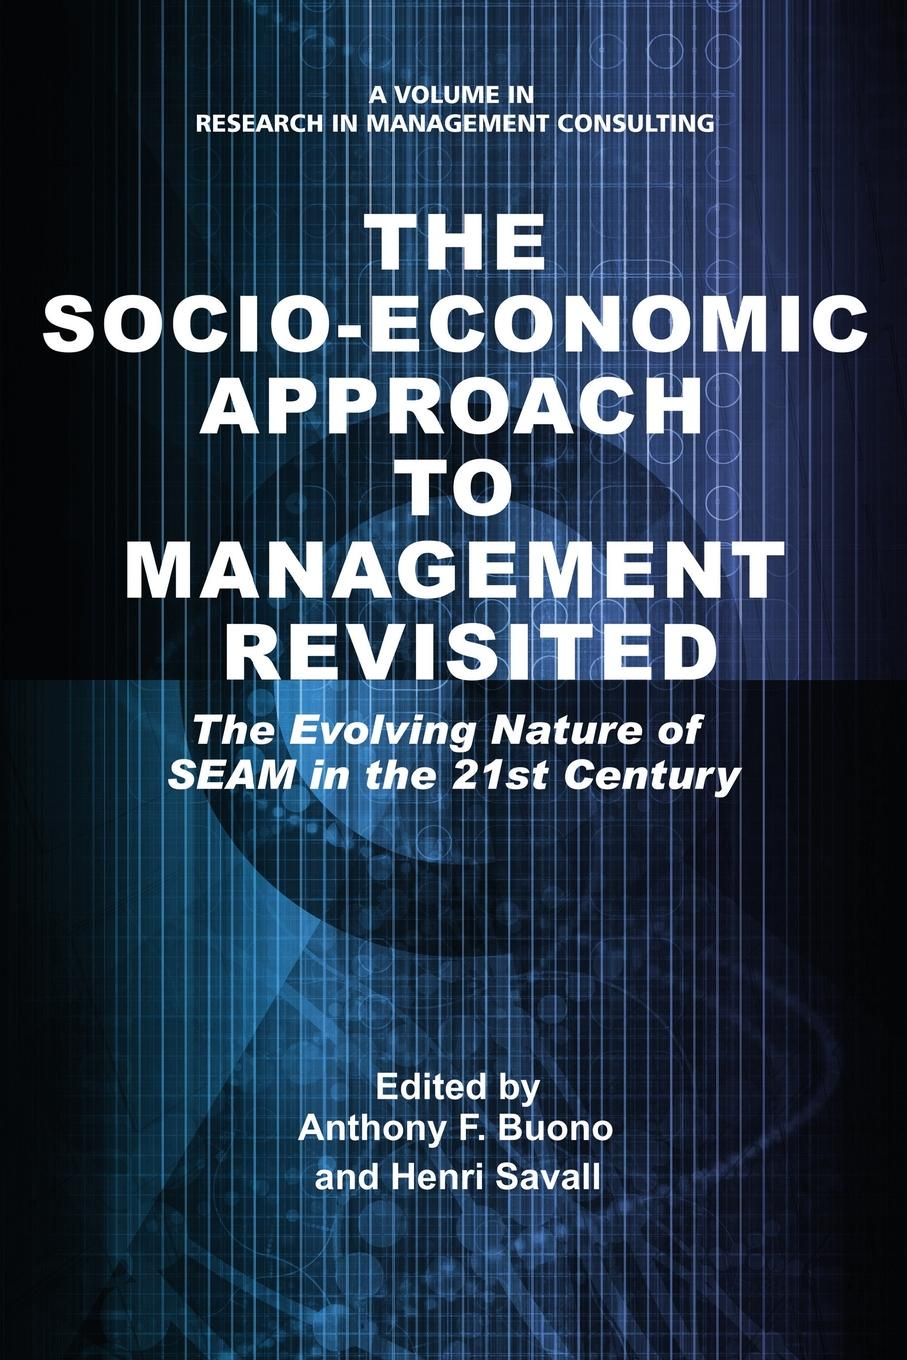 The Socio-Economic Approach to Management Revisited. The Evolving Nature of SEAM in the 21st Century socio economic determinants of performance of smes